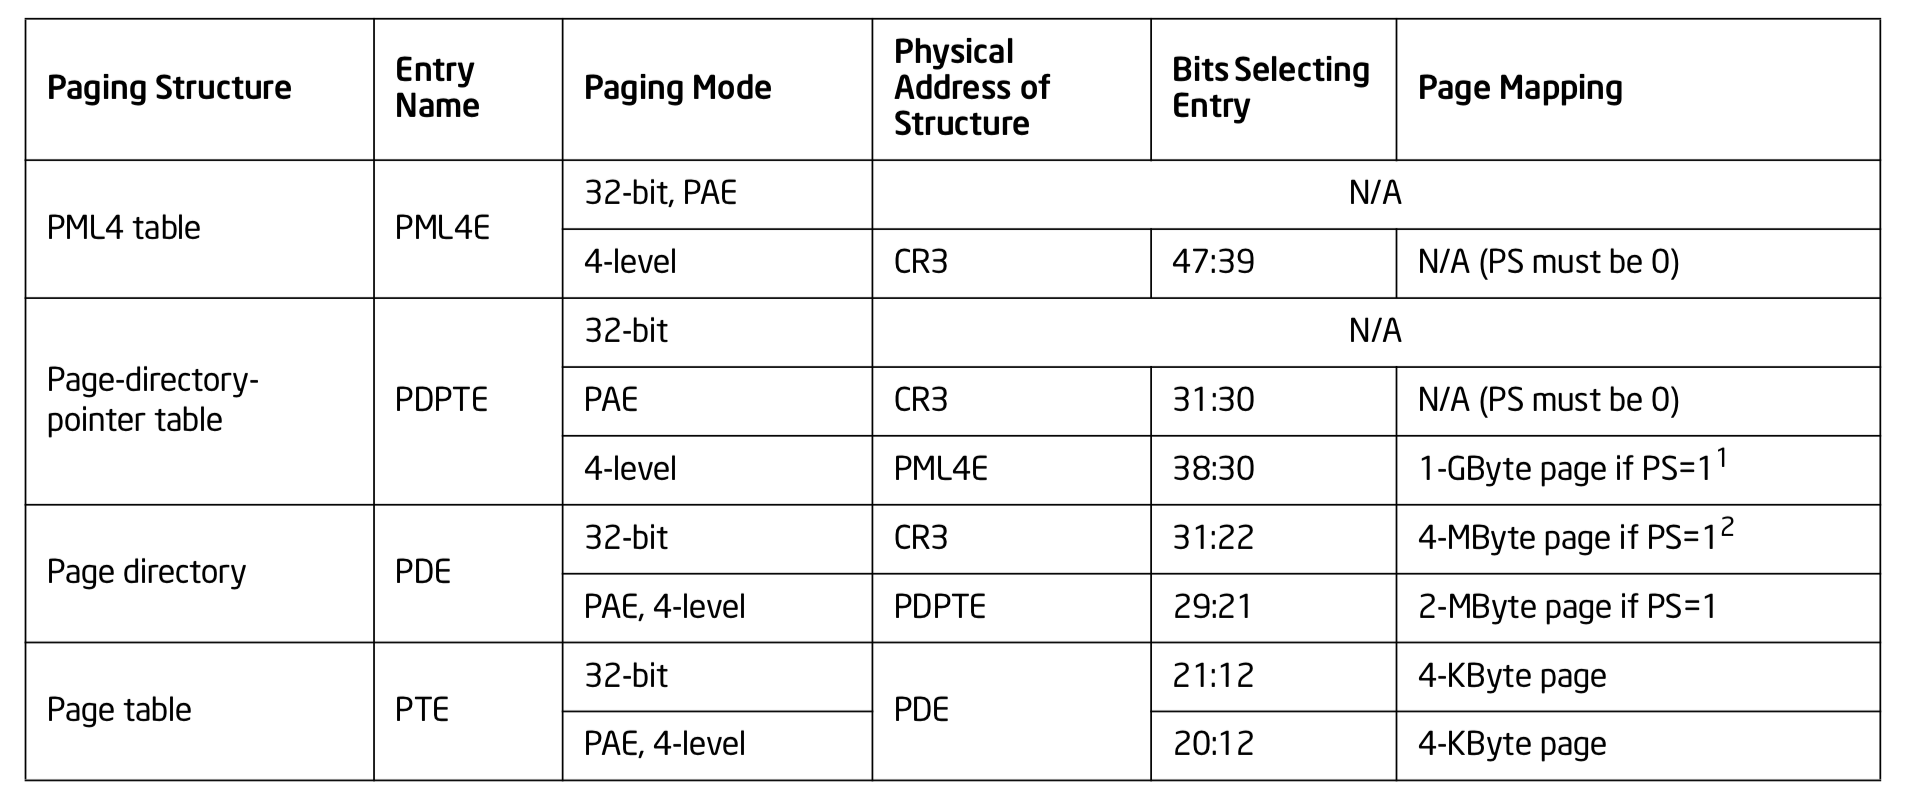 Paging Structures in the Different Paging Modes